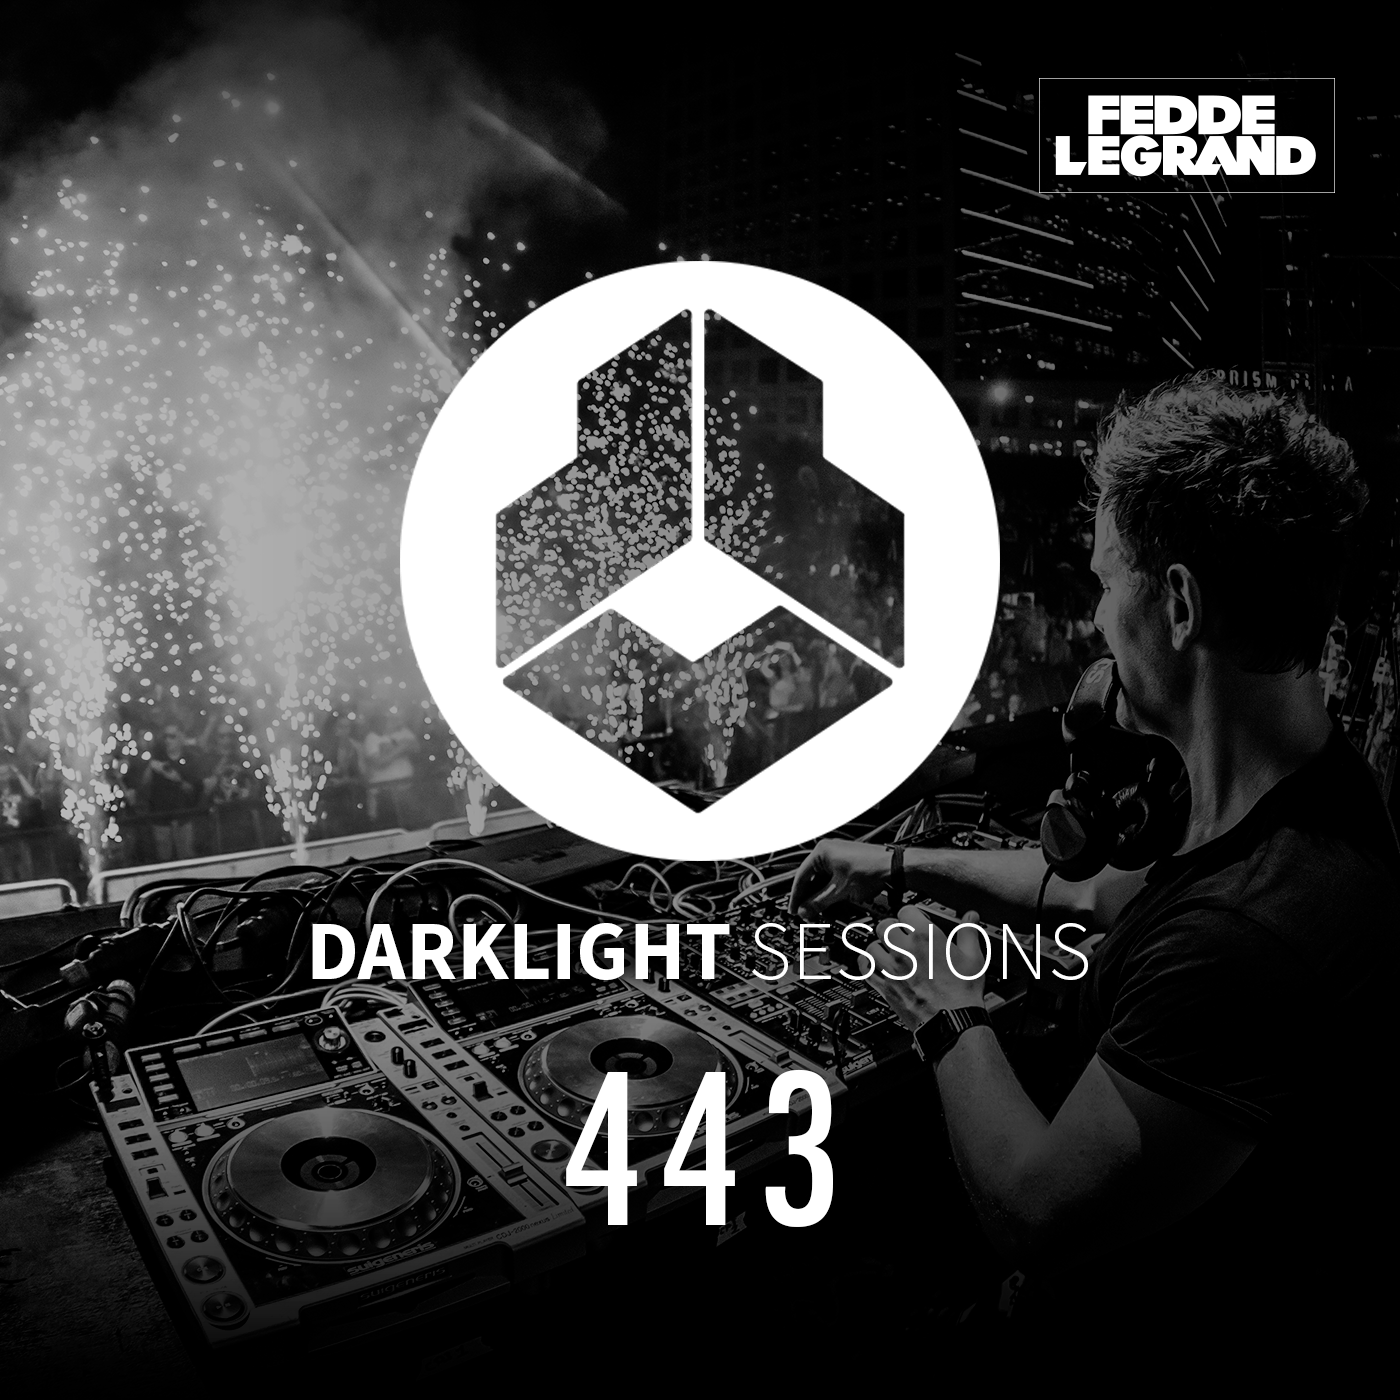 Darklight Sessions 443